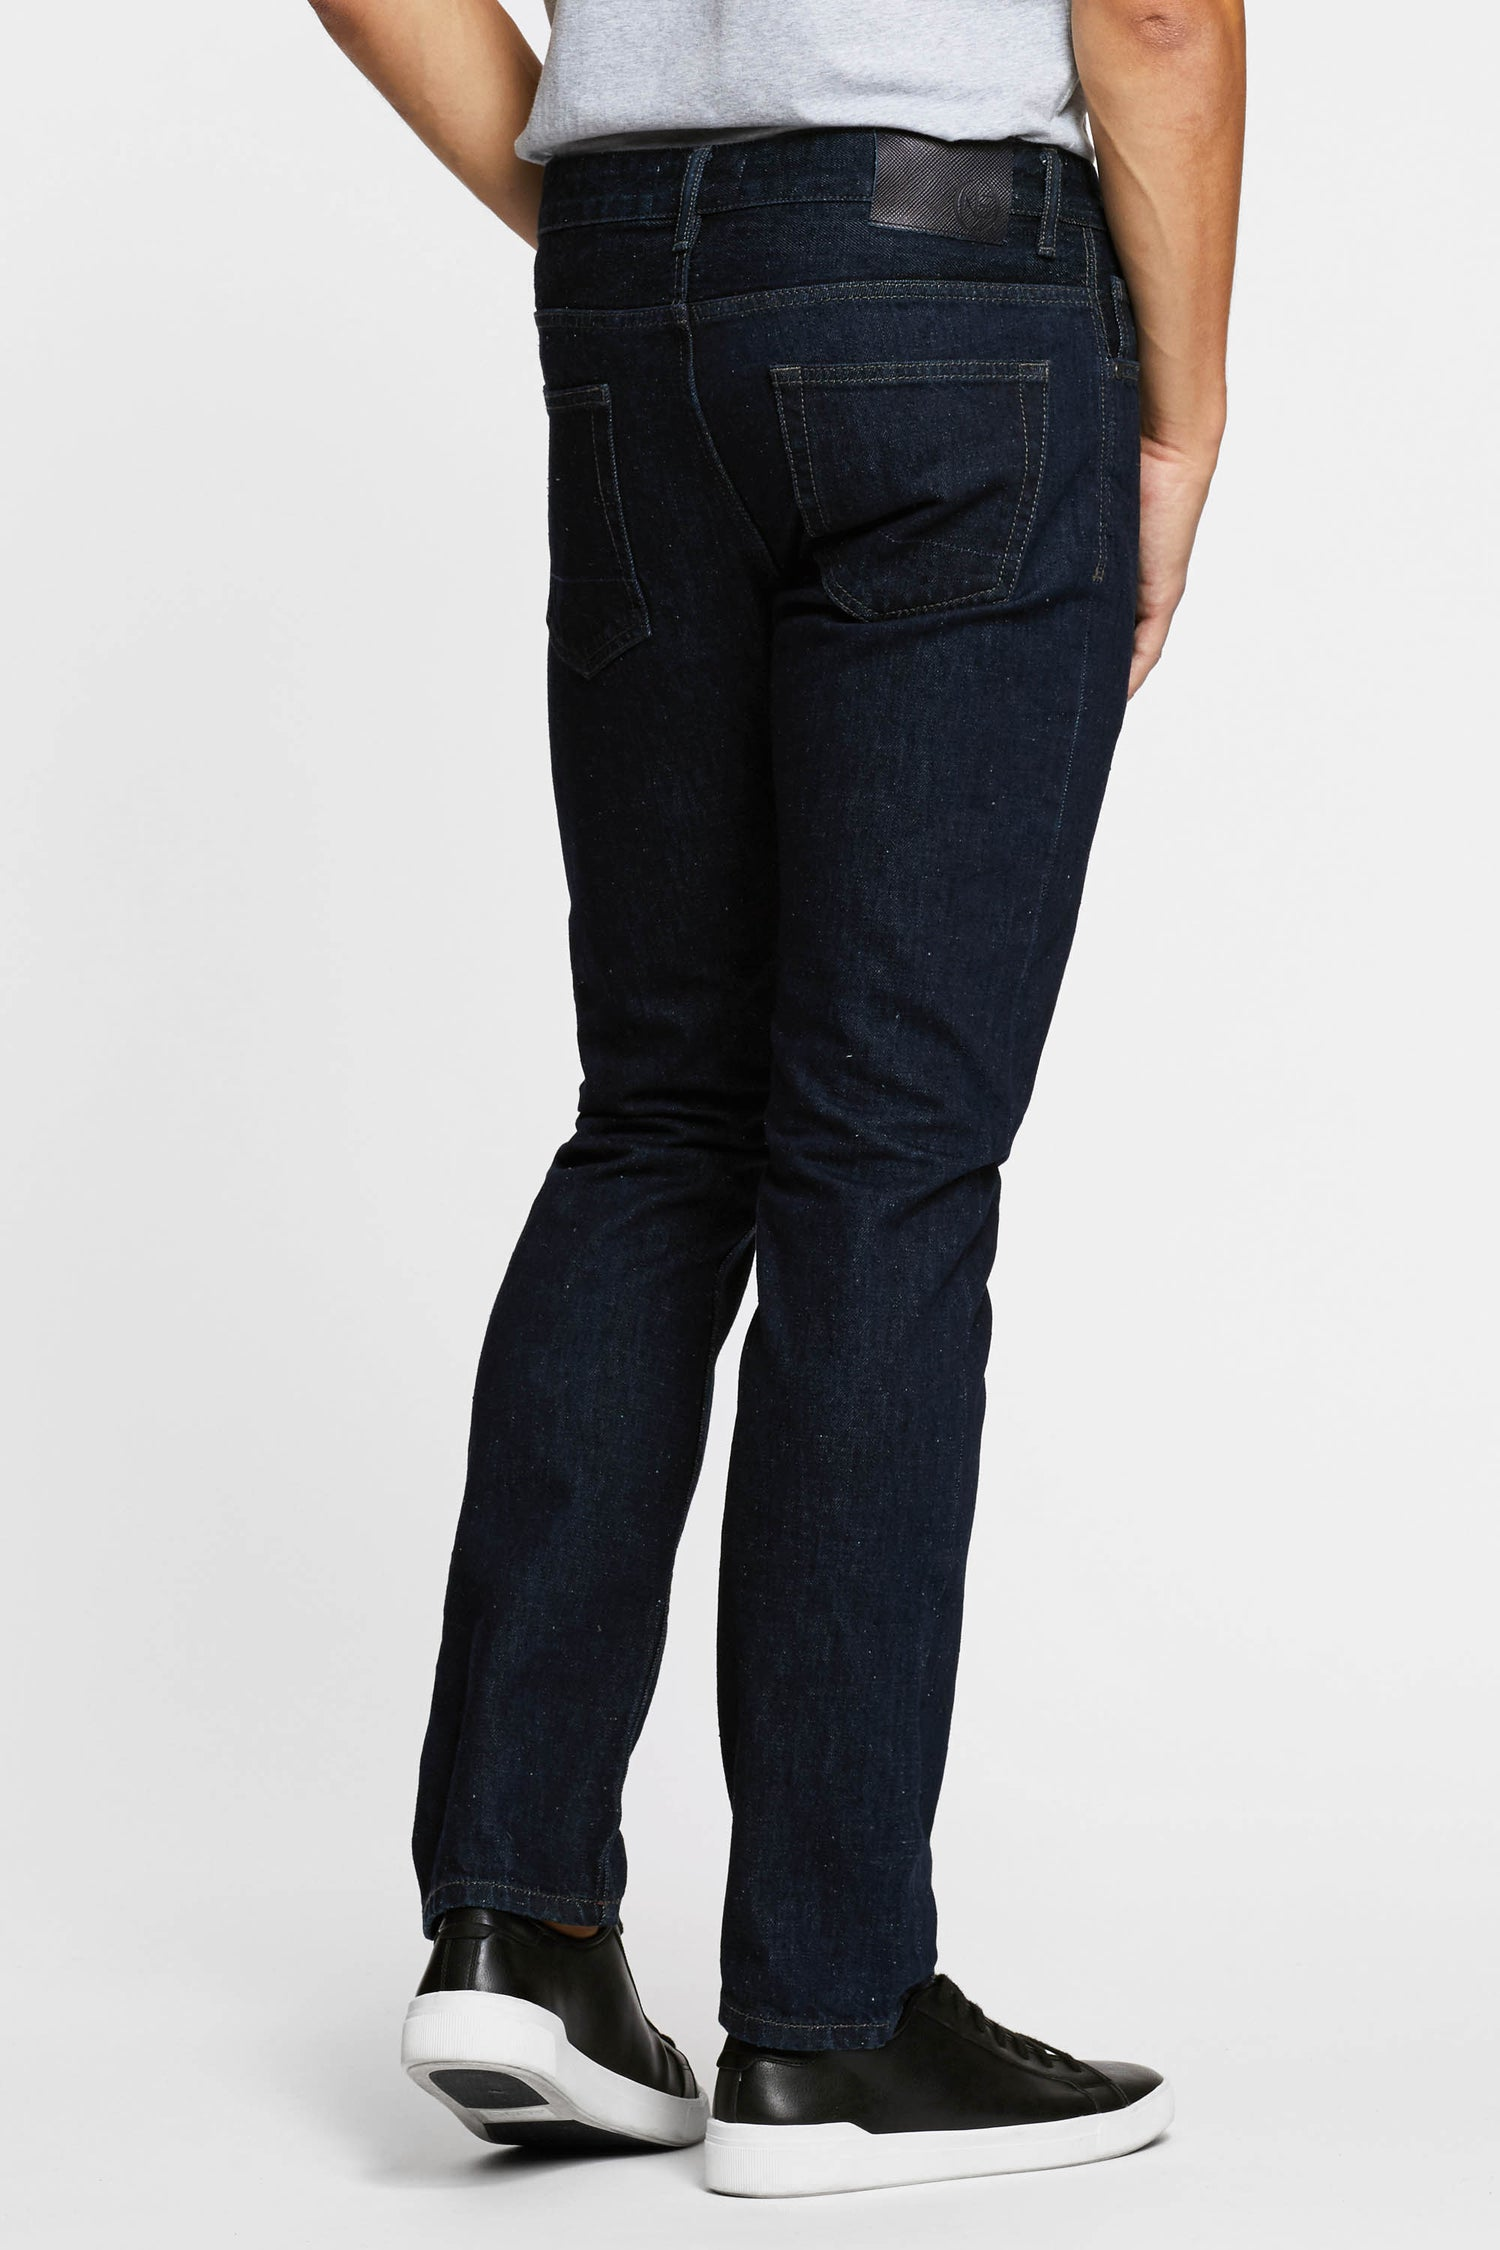 Straight Selvedge Jean - PS